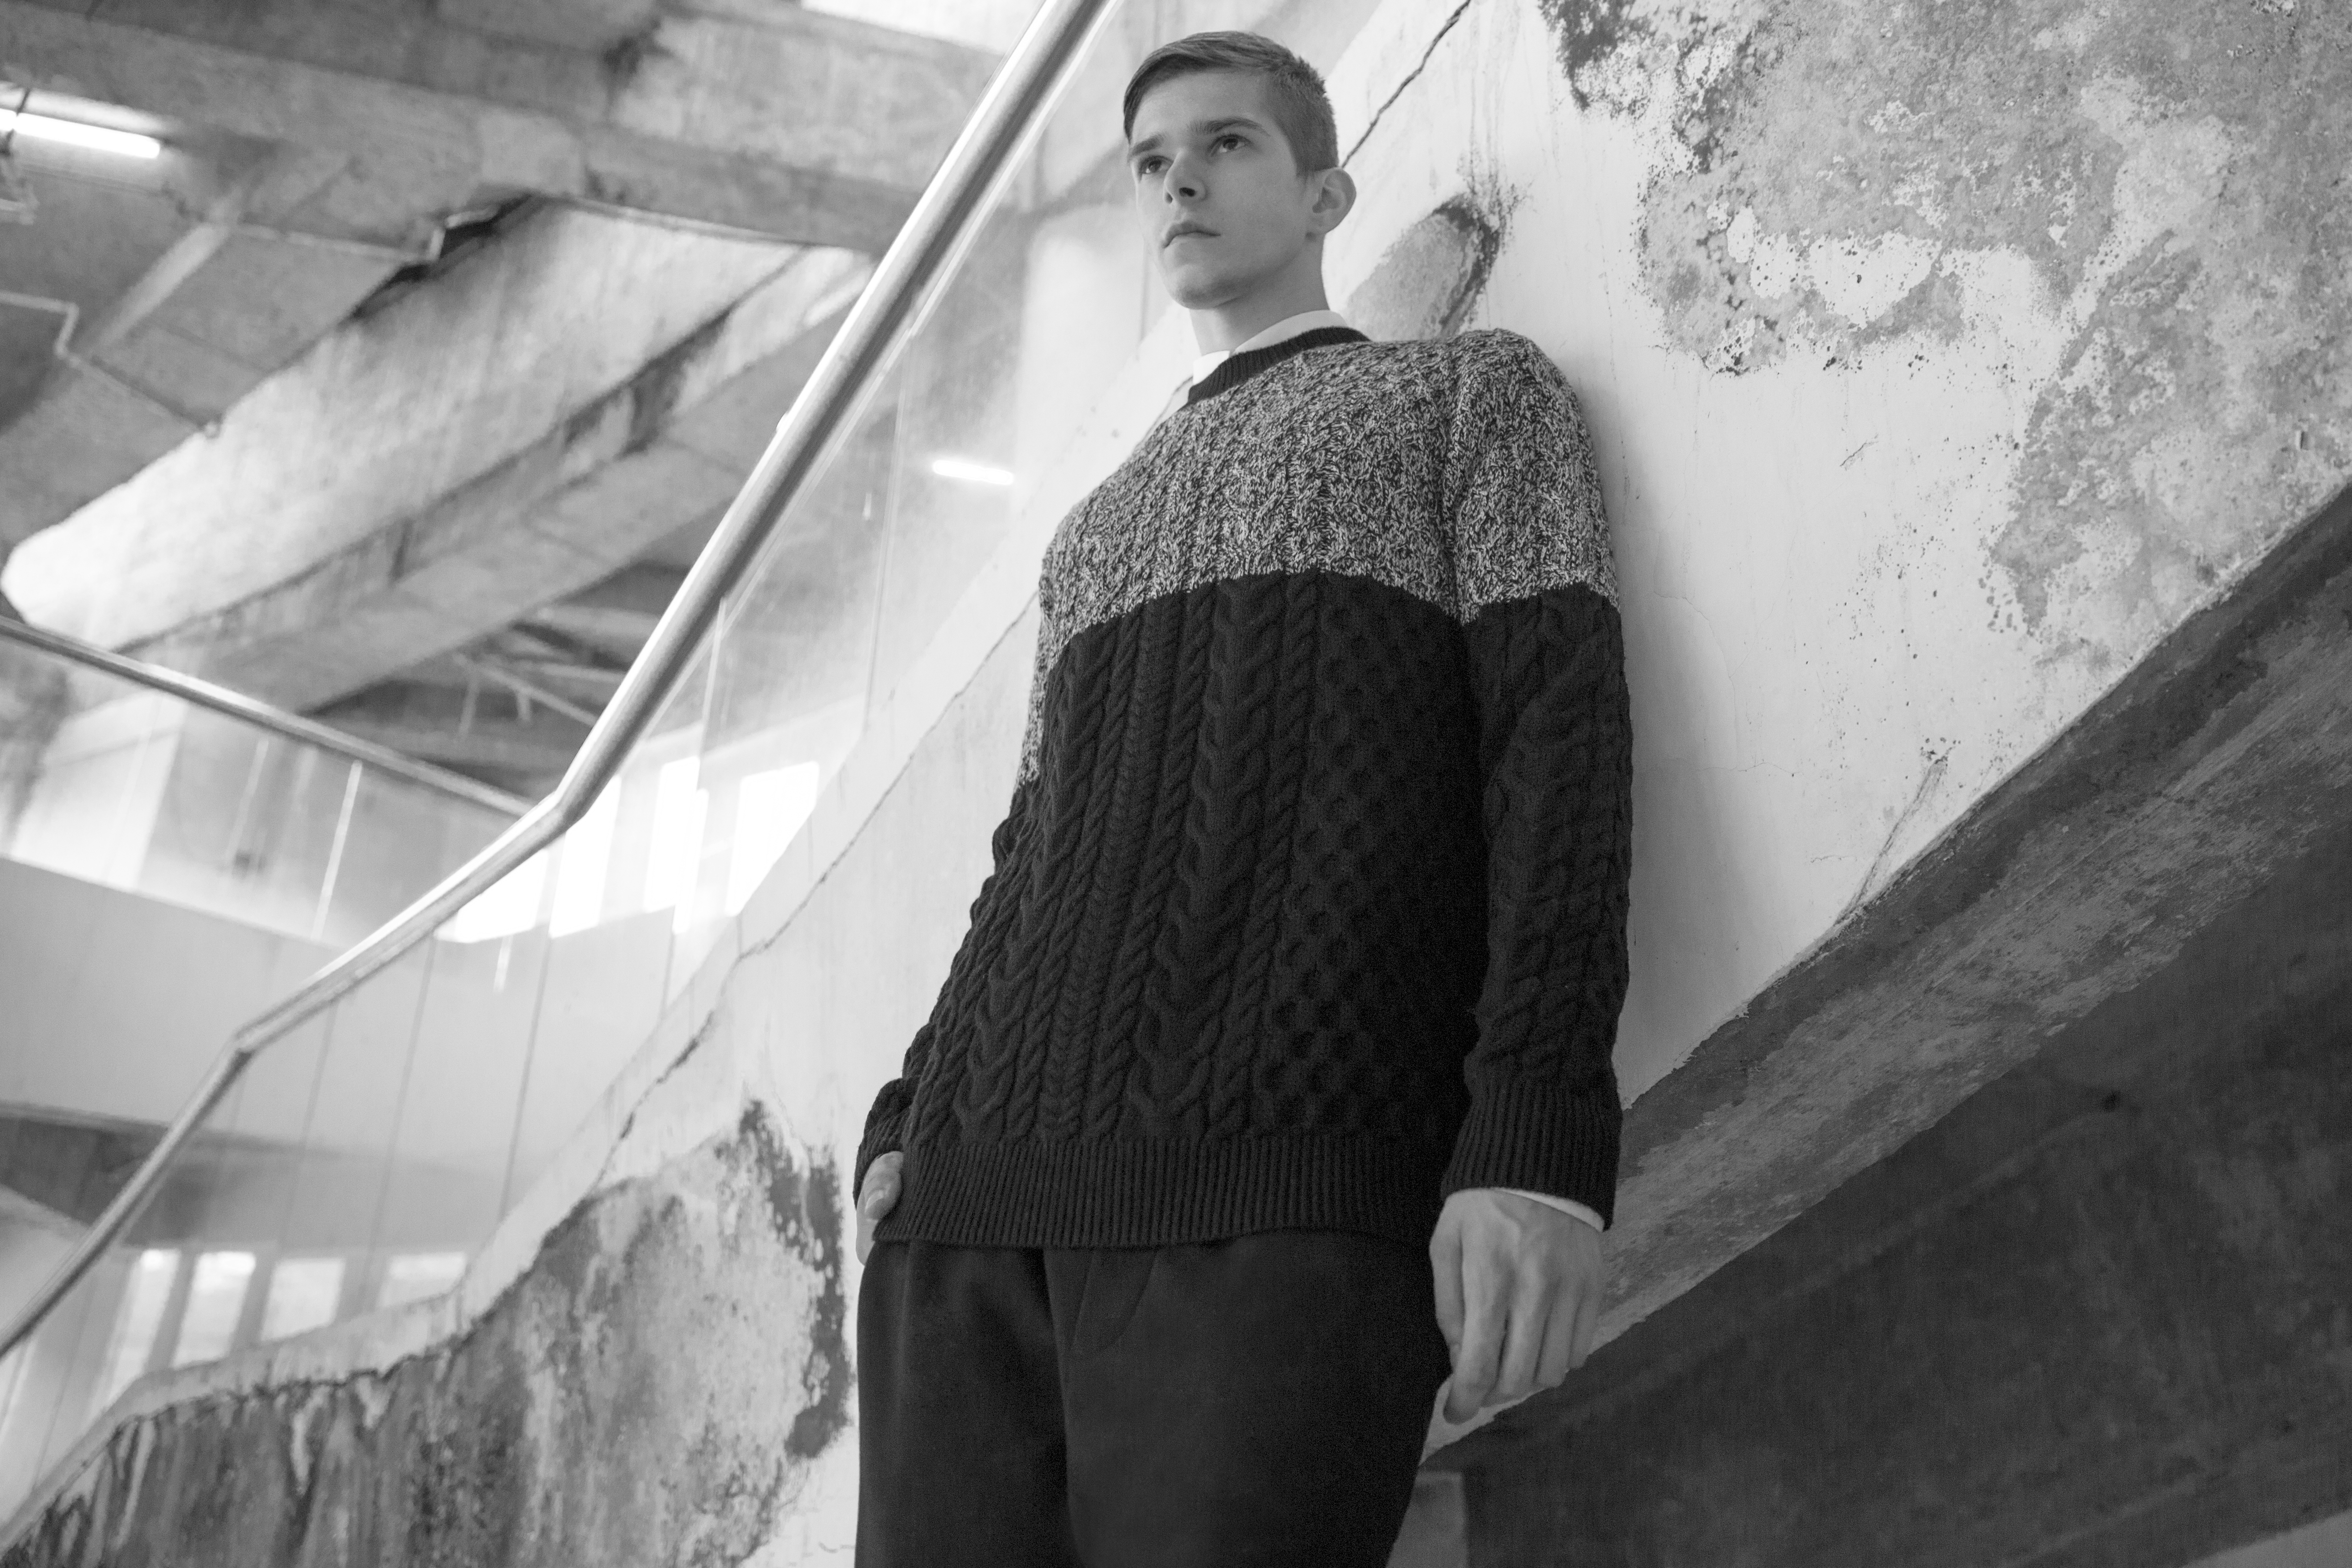 McQ by Alexander McQueen 2015 Fall/Winter Collection